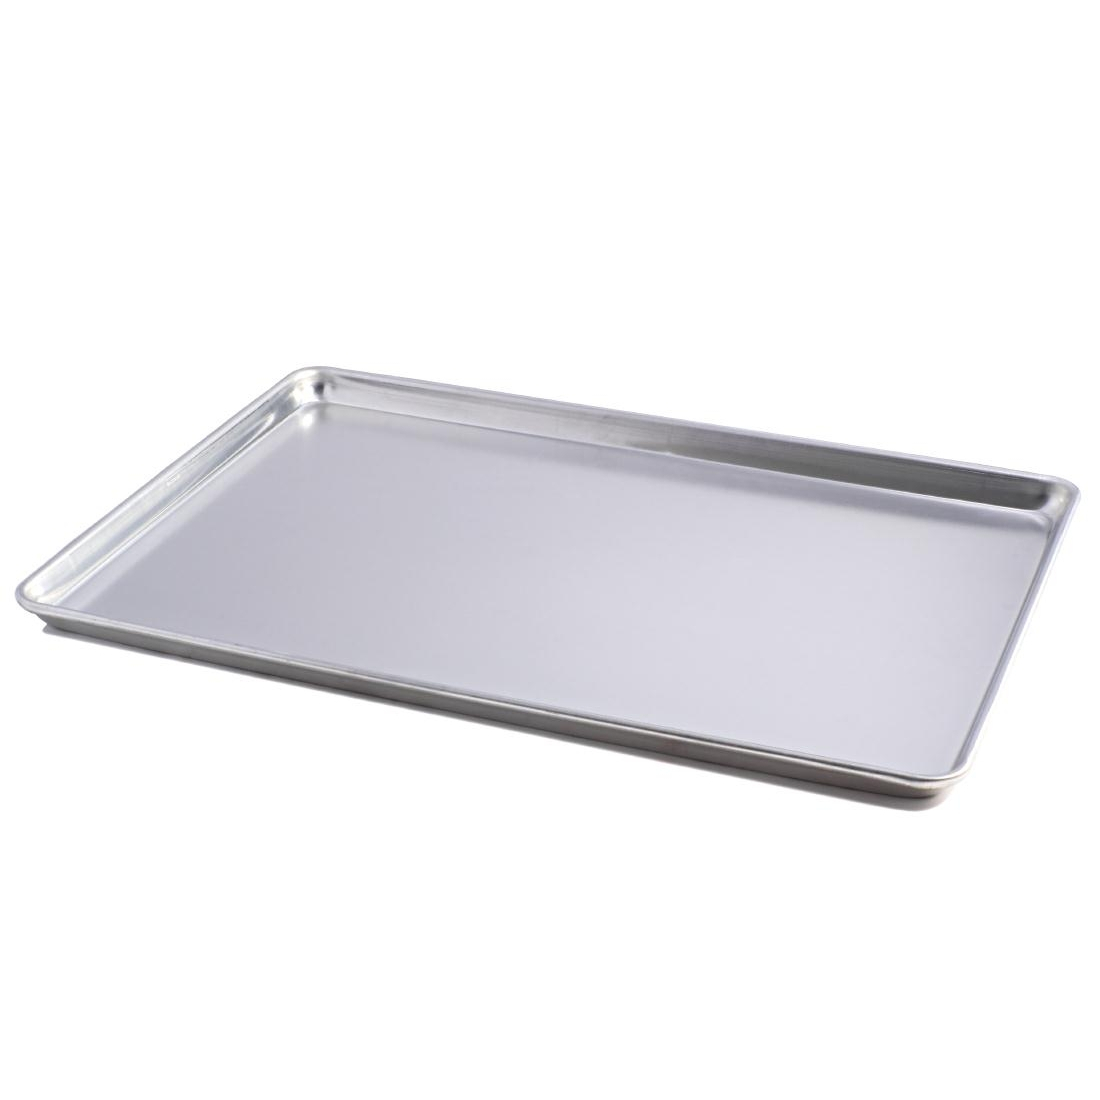 Blue Seal Baking Tray